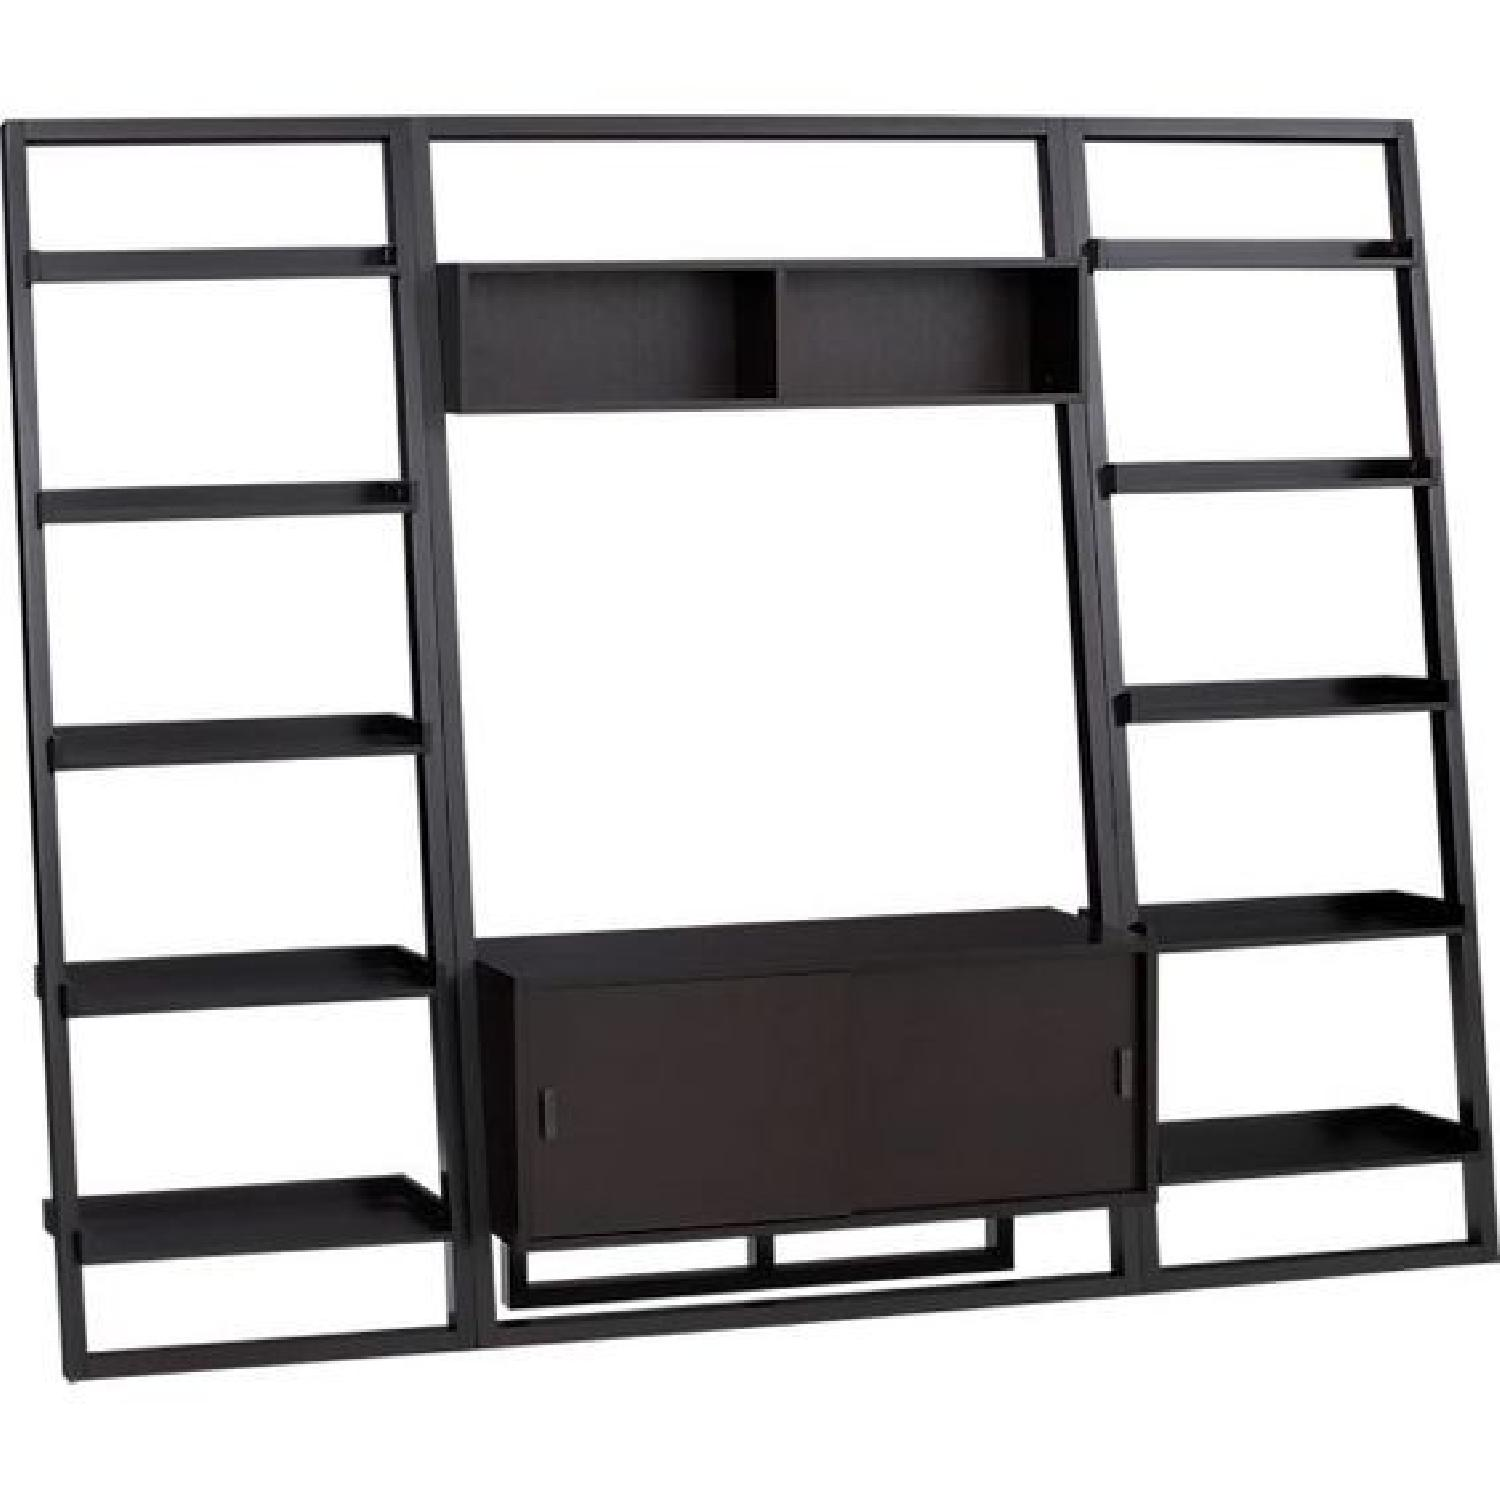 Crate & Barrel Sloane Leaning Media Stand w/ 2 Bookcases